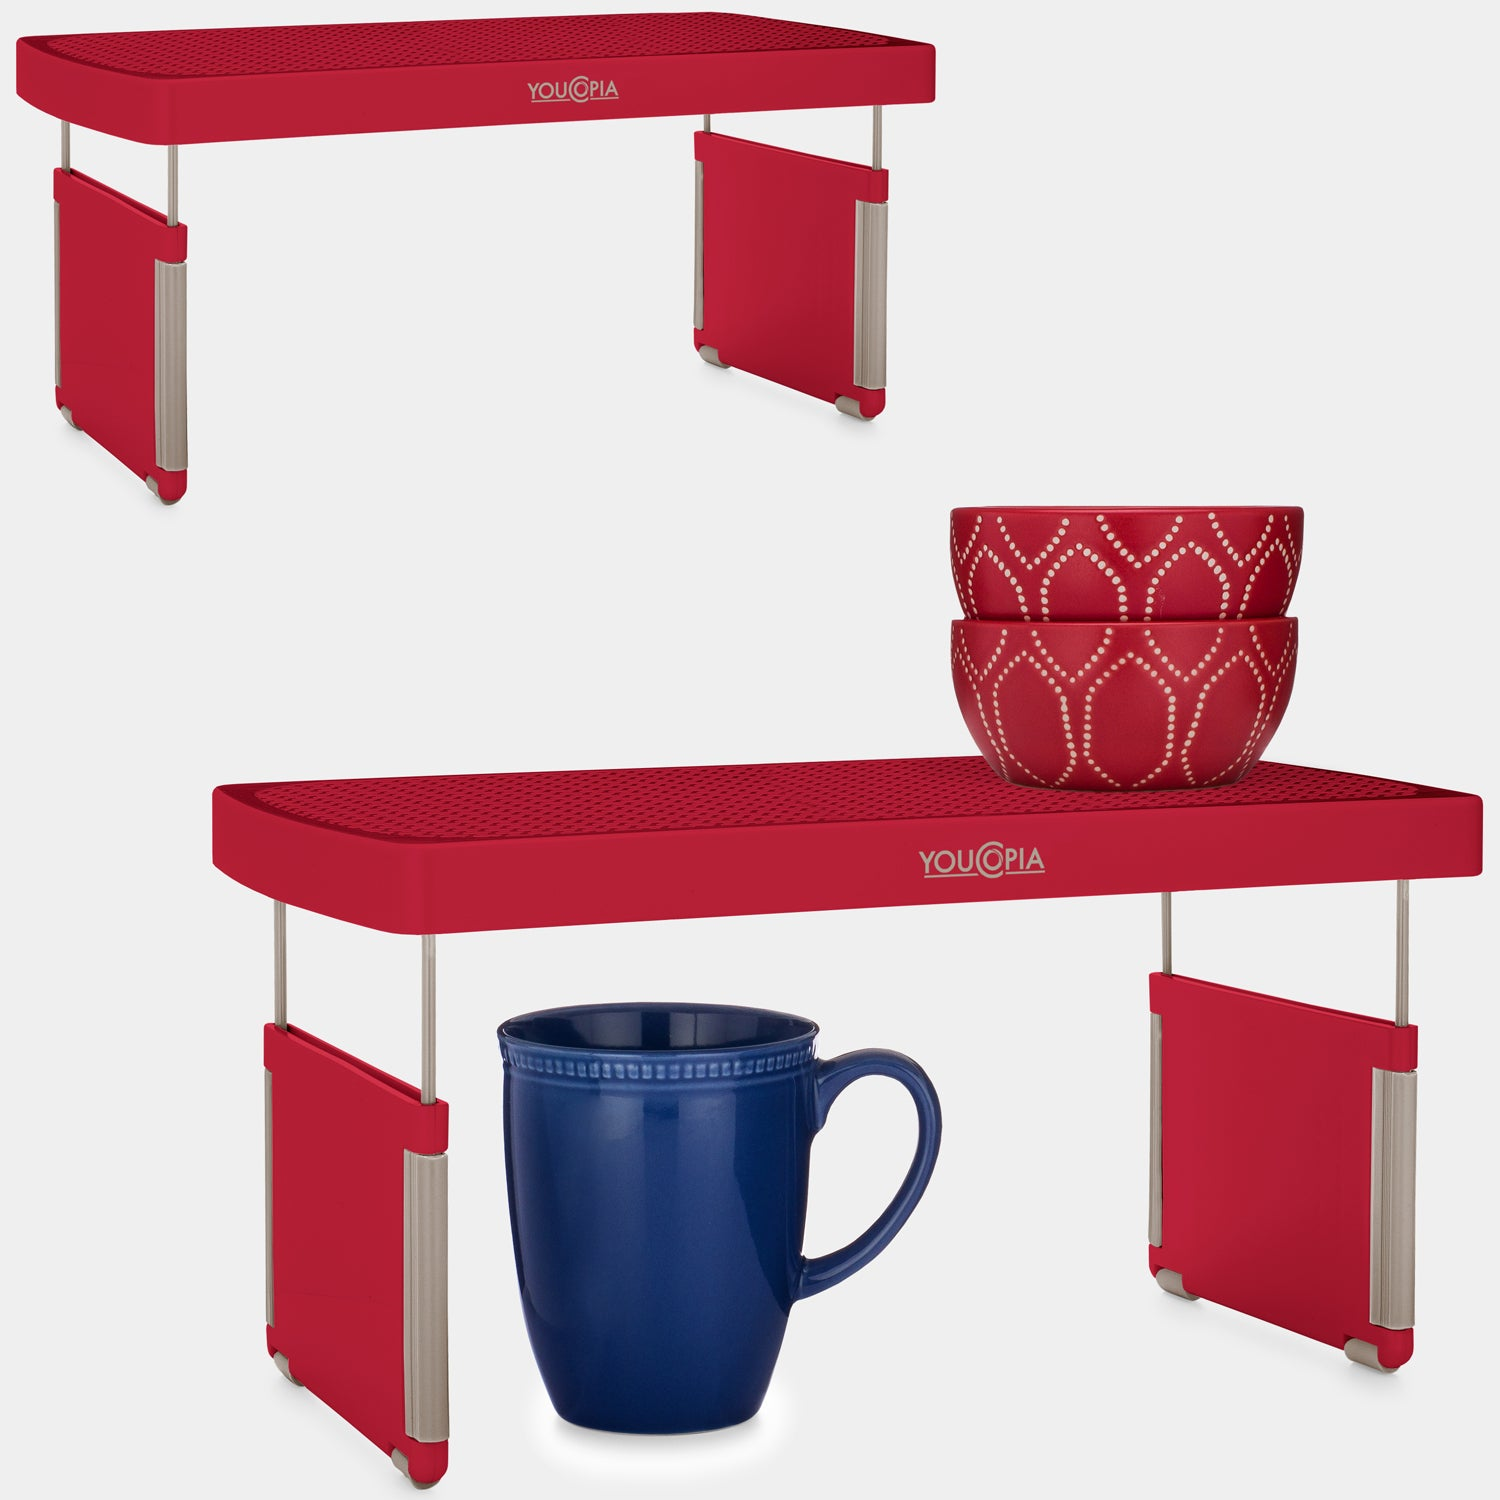 YouCopia StoreMore Height Adjustable Cabinet Shelf Organizer 2-Pack, Red